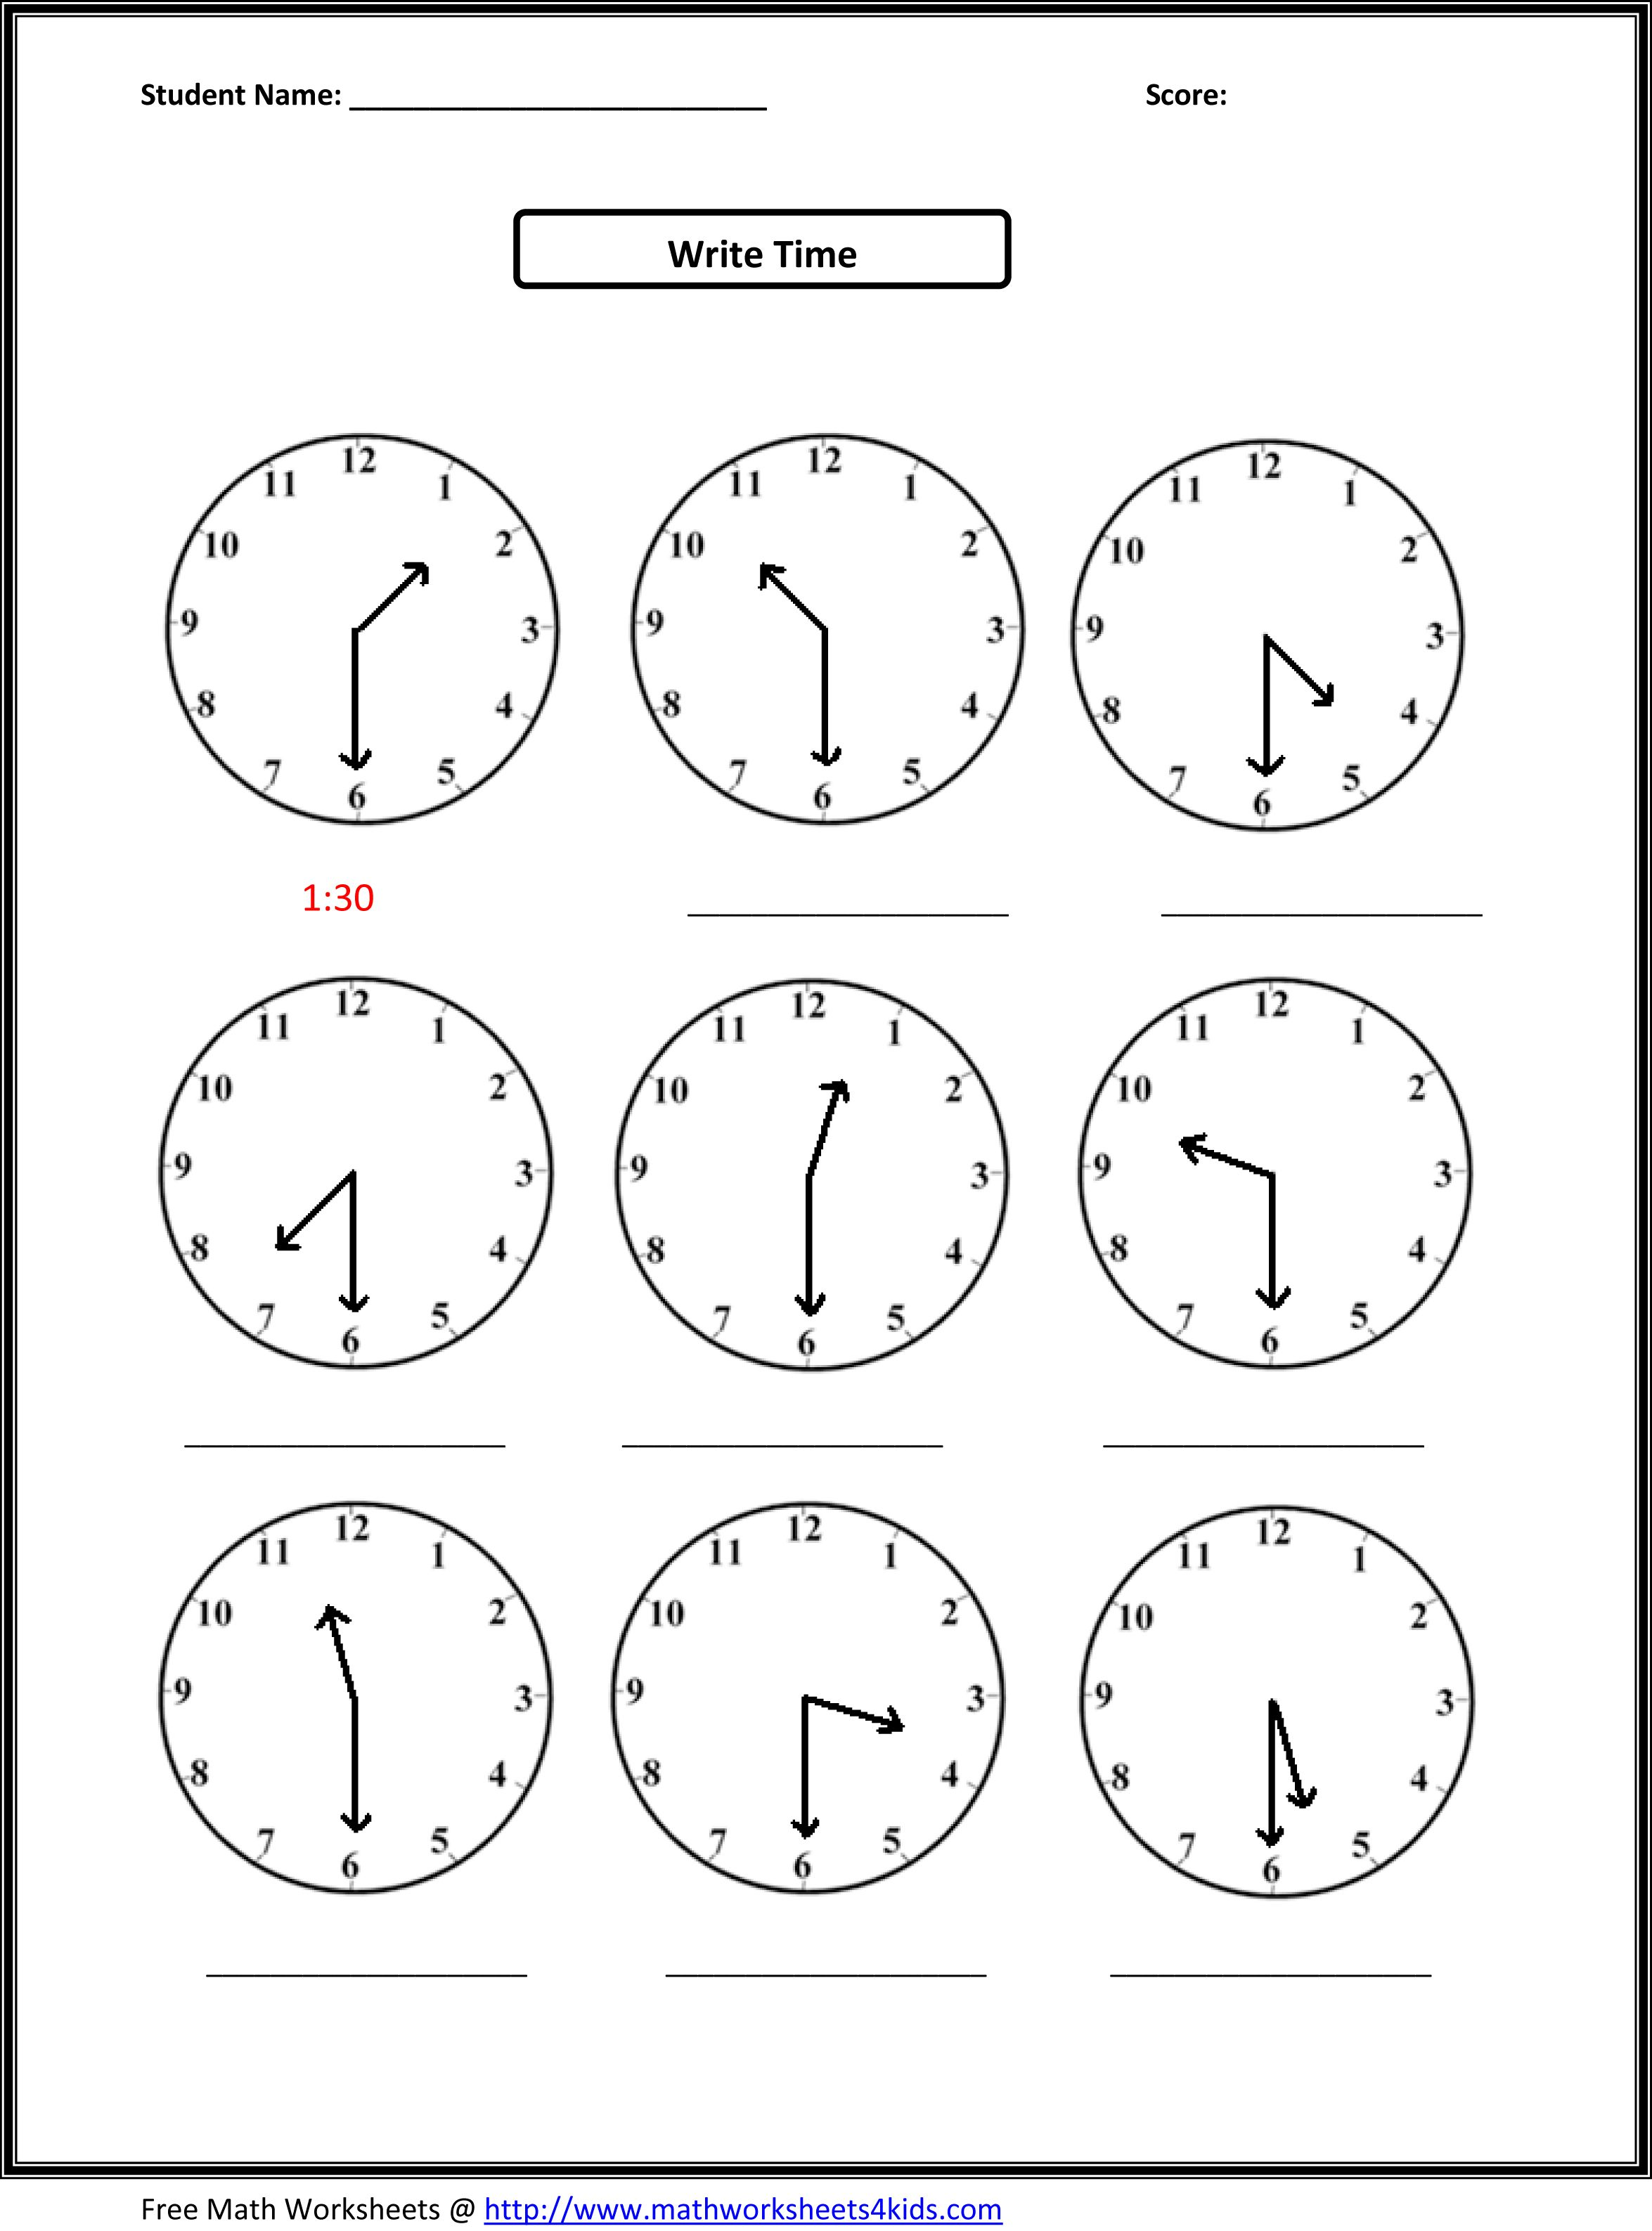 Weirdmailus  Marvelous Worksheet On Time For Grade   Reocurent With Foxy Free Printable Telling Time Worksheets Nd Grade  Reocurent With Attractive Chemistry Unit  Worksheet  Also Travel Worksheet In Addition Printable First Grade Reading Worksheets And Th Grade Multiplication Worksheet As Well As Subject Verb Agreement Worksheets High School With Answers Additionally Unit Rates Worksheet Th Grade From Reocurentcom With Weirdmailus  Foxy Worksheet On Time For Grade   Reocurent With Attractive Free Printable Telling Time Worksheets Nd Grade  Reocurent And Marvelous Chemistry Unit  Worksheet  Also Travel Worksheet In Addition Printable First Grade Reading Worksheets From Reocurentcom